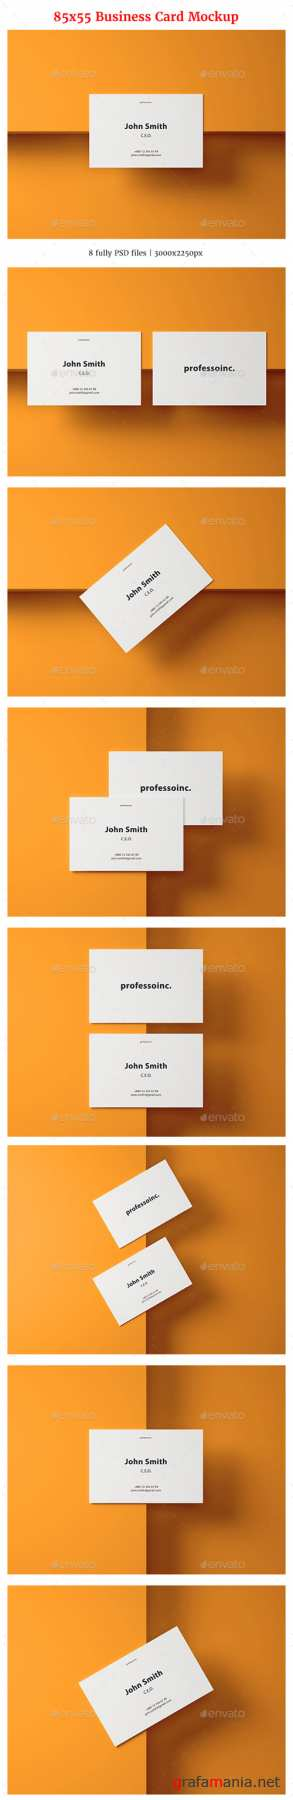 85x55 Business Card Mockup Set 2 20769194